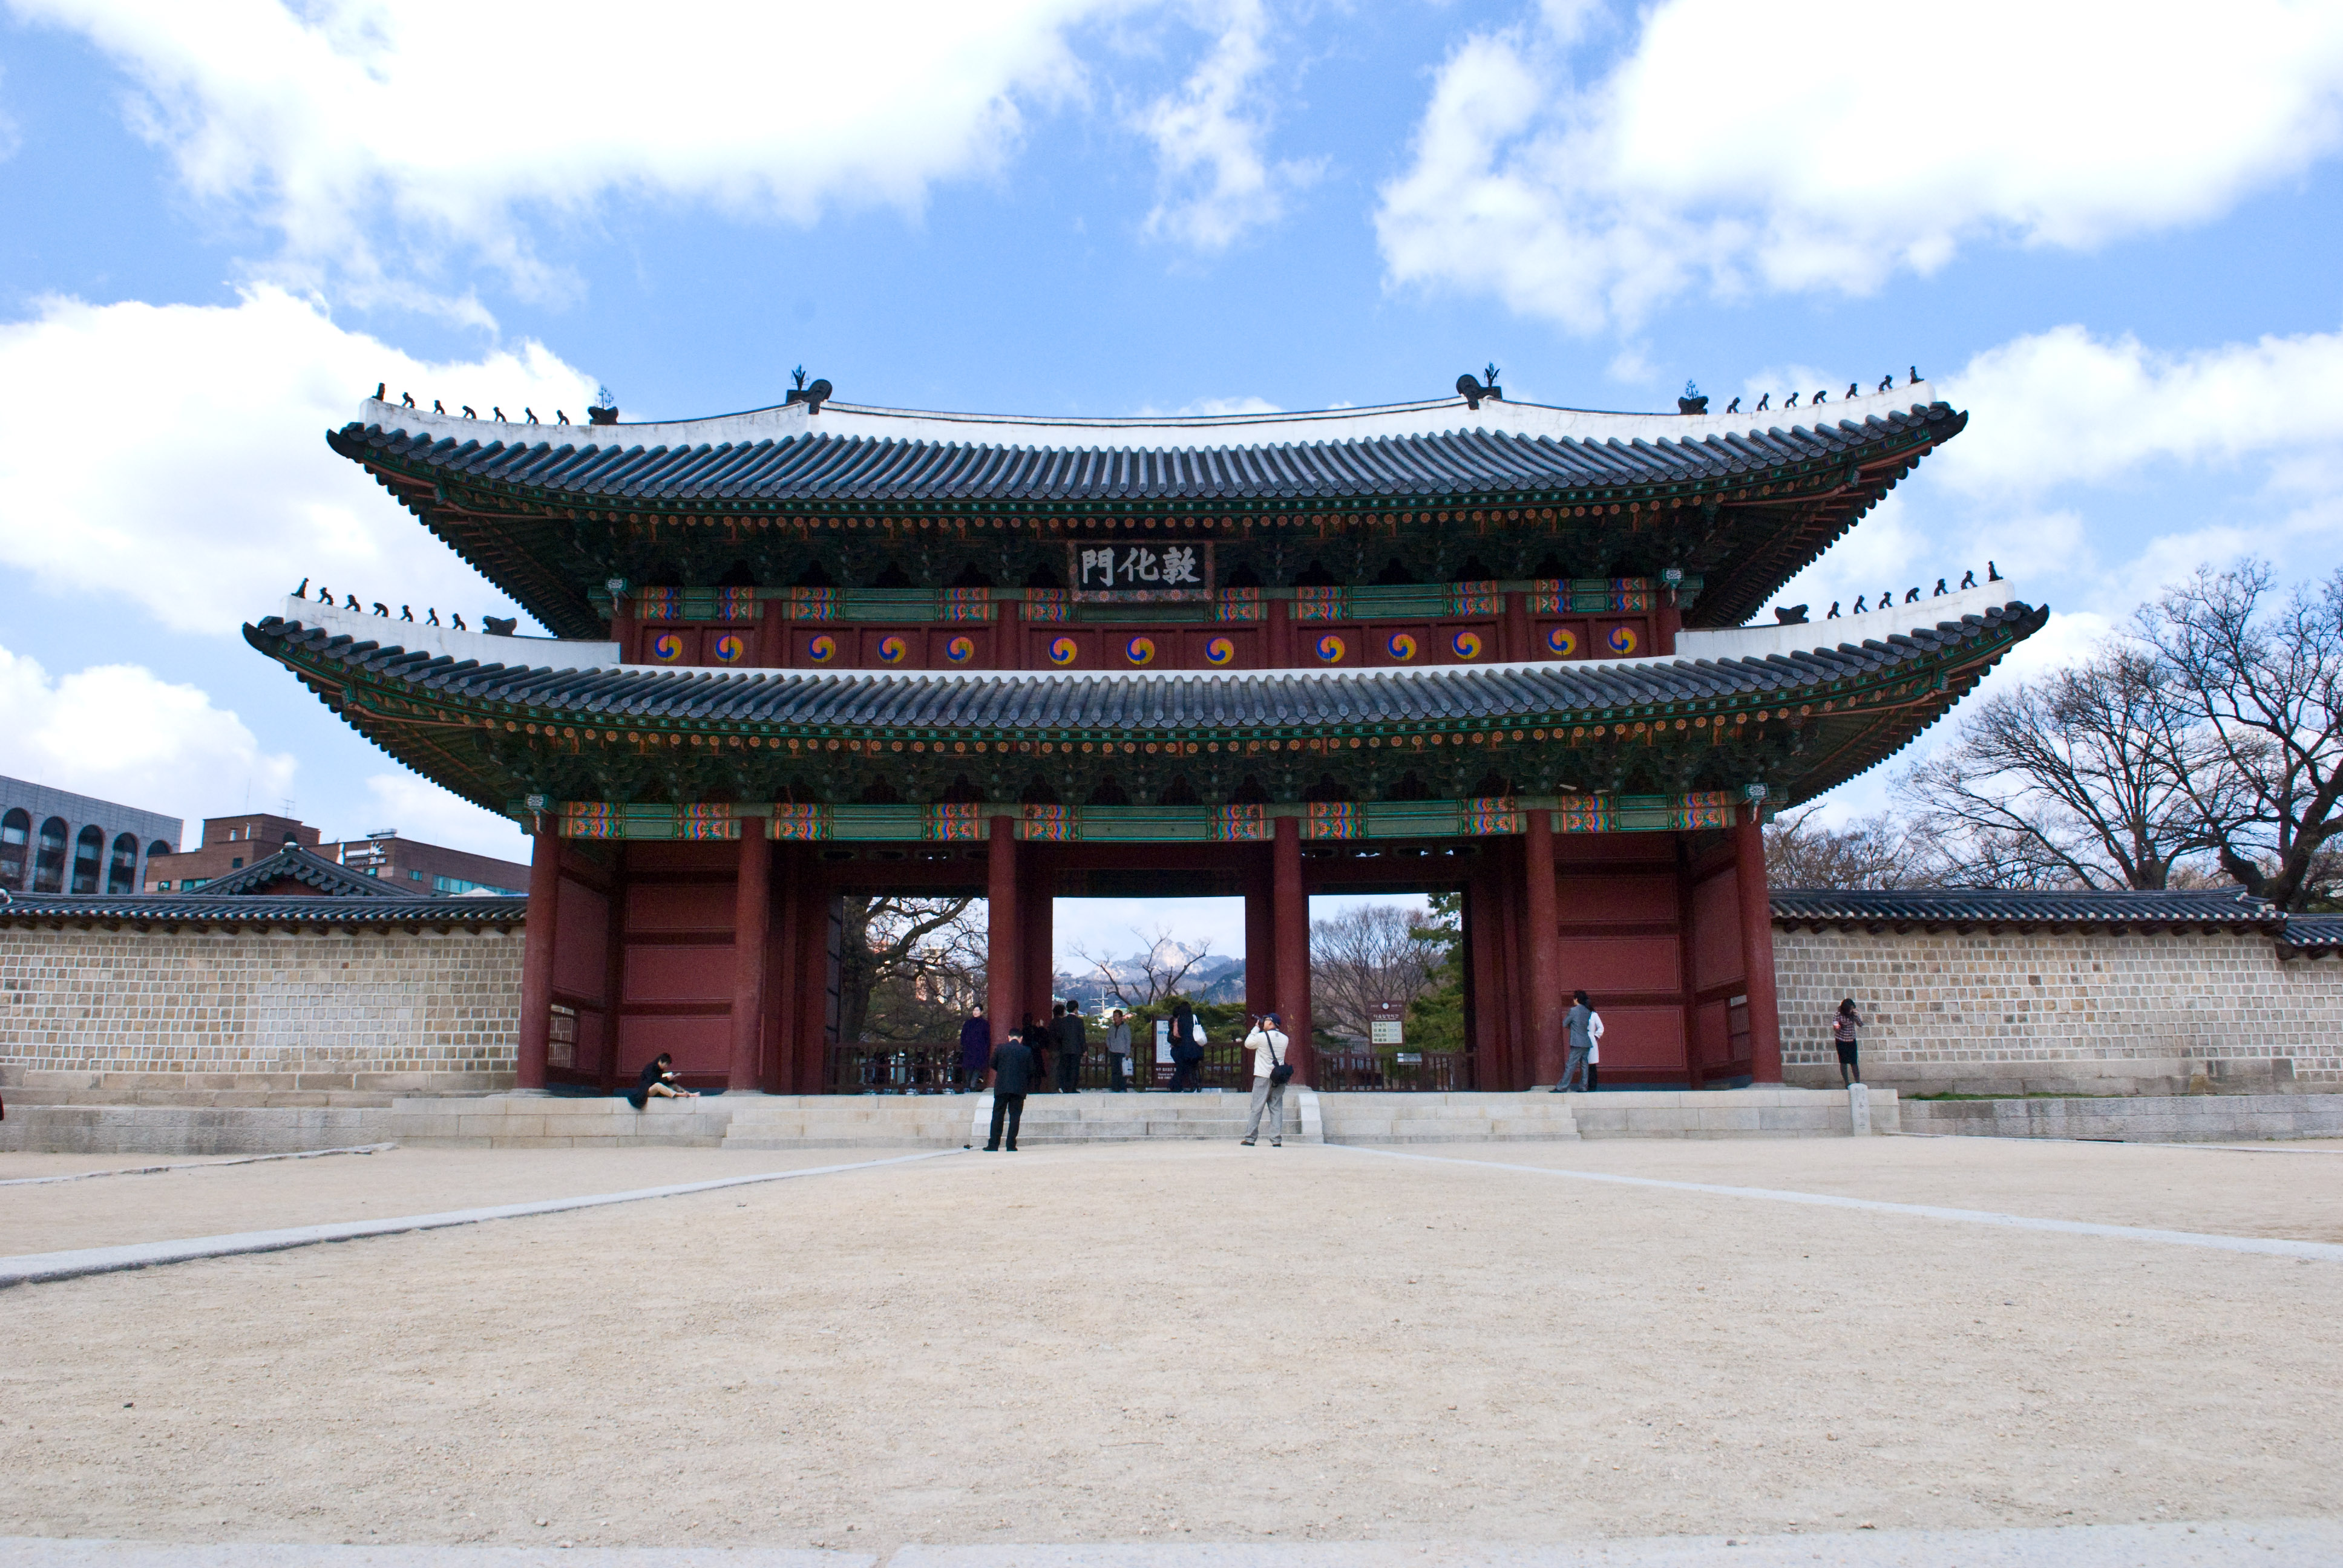 Seoul City announced a 9.6 billion won project to build a traditional music hall across from Donhwamun of Changdeokgung. (Photo by Josh Hallett via Wikimedia Commons)